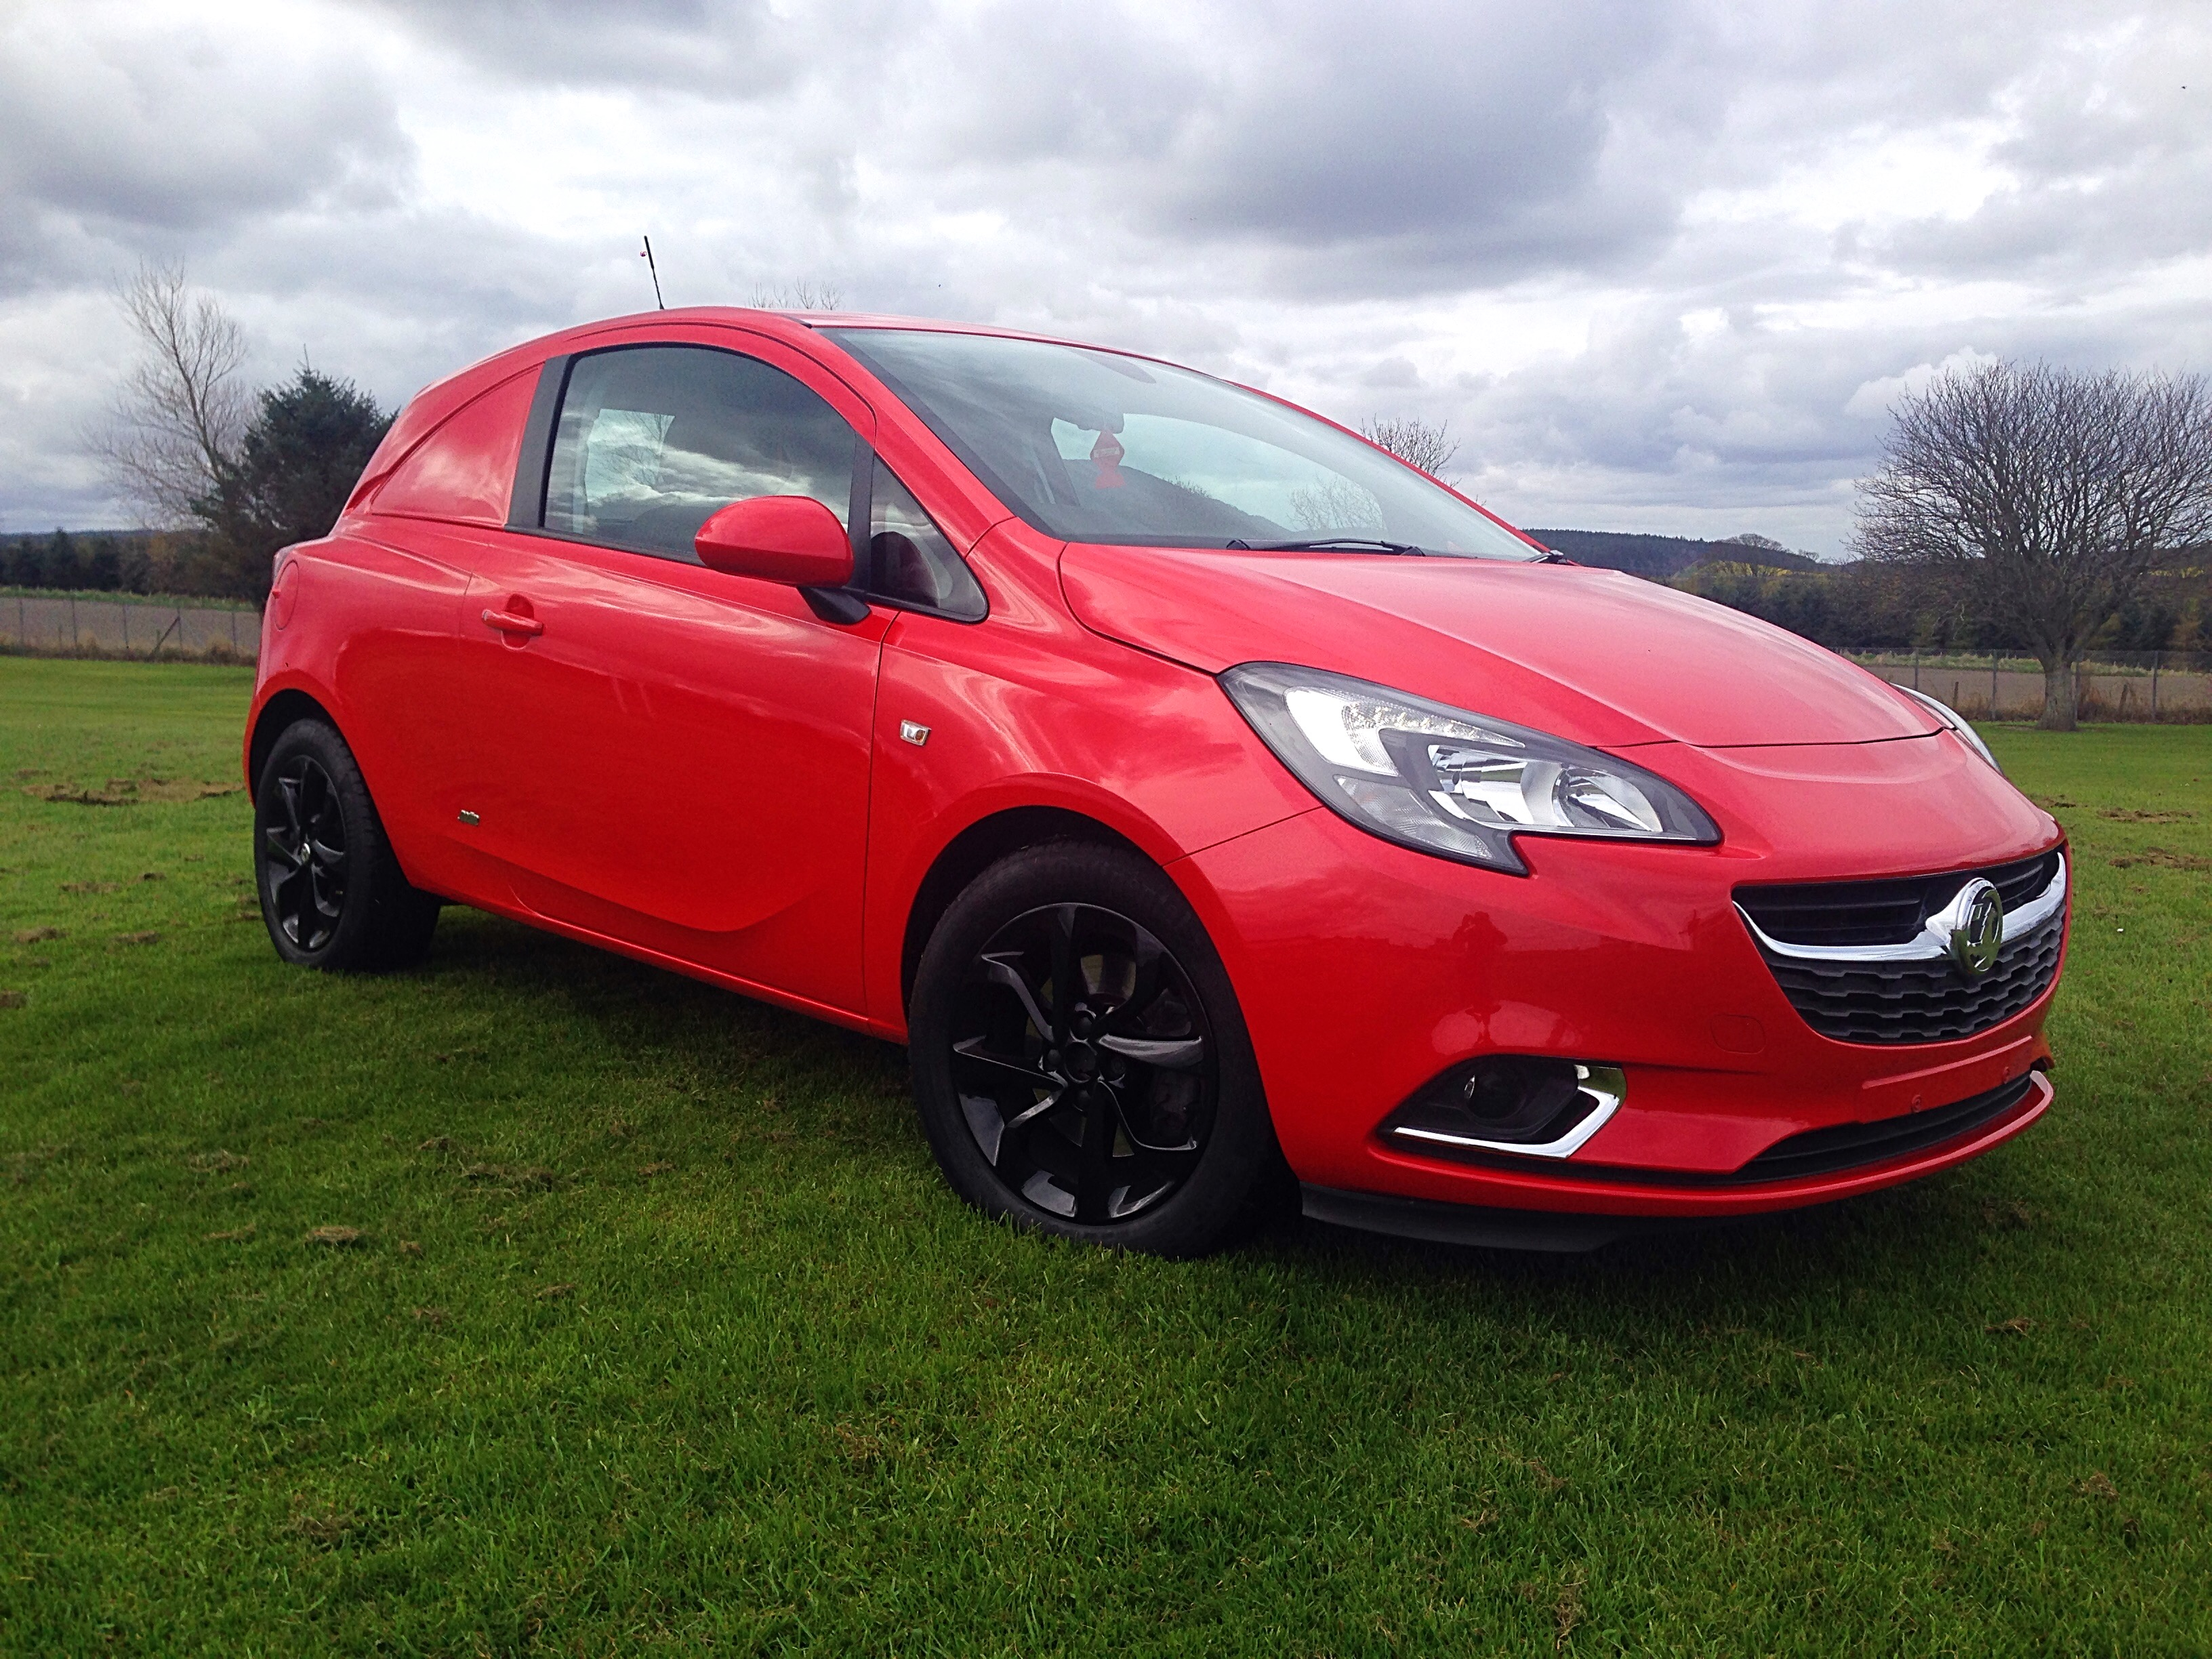 vauxhall corsa sportive 1 3 cdti 95 bhp 2015 no vat g ten commercials ltd. Black Bedroom Furniture Sets. Home Design Ideas